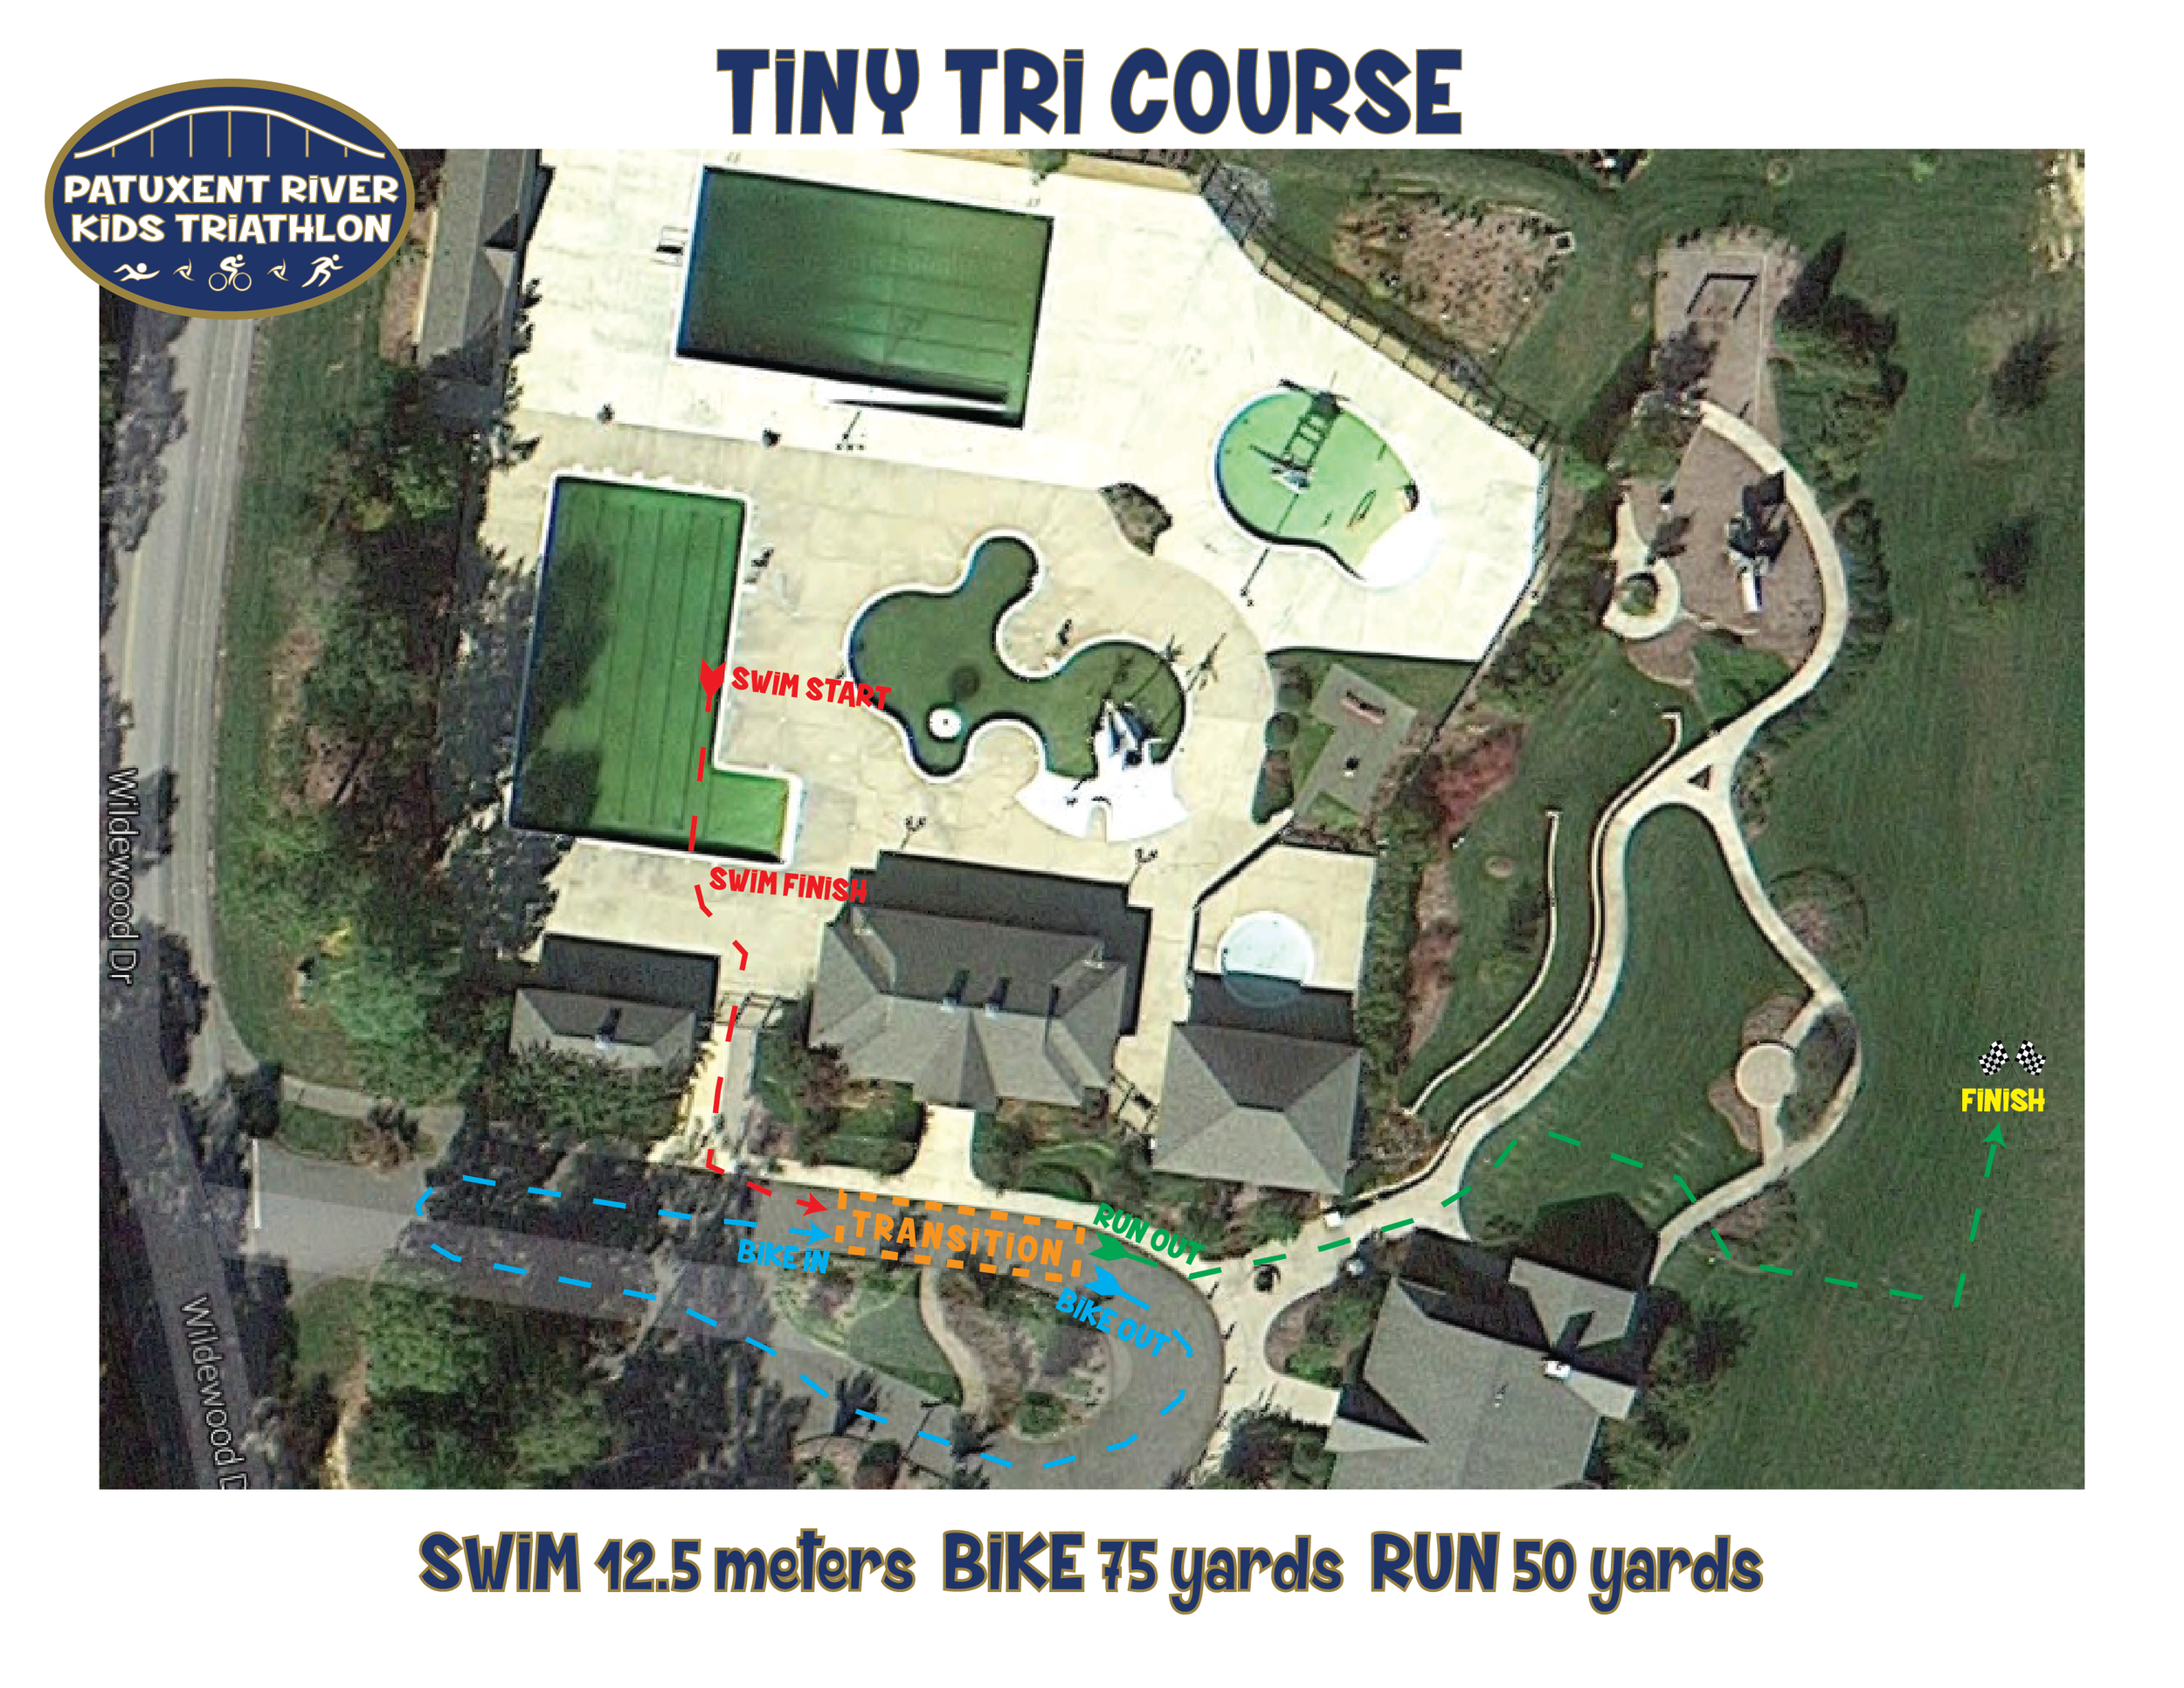 TinyTri-CourseMap.png